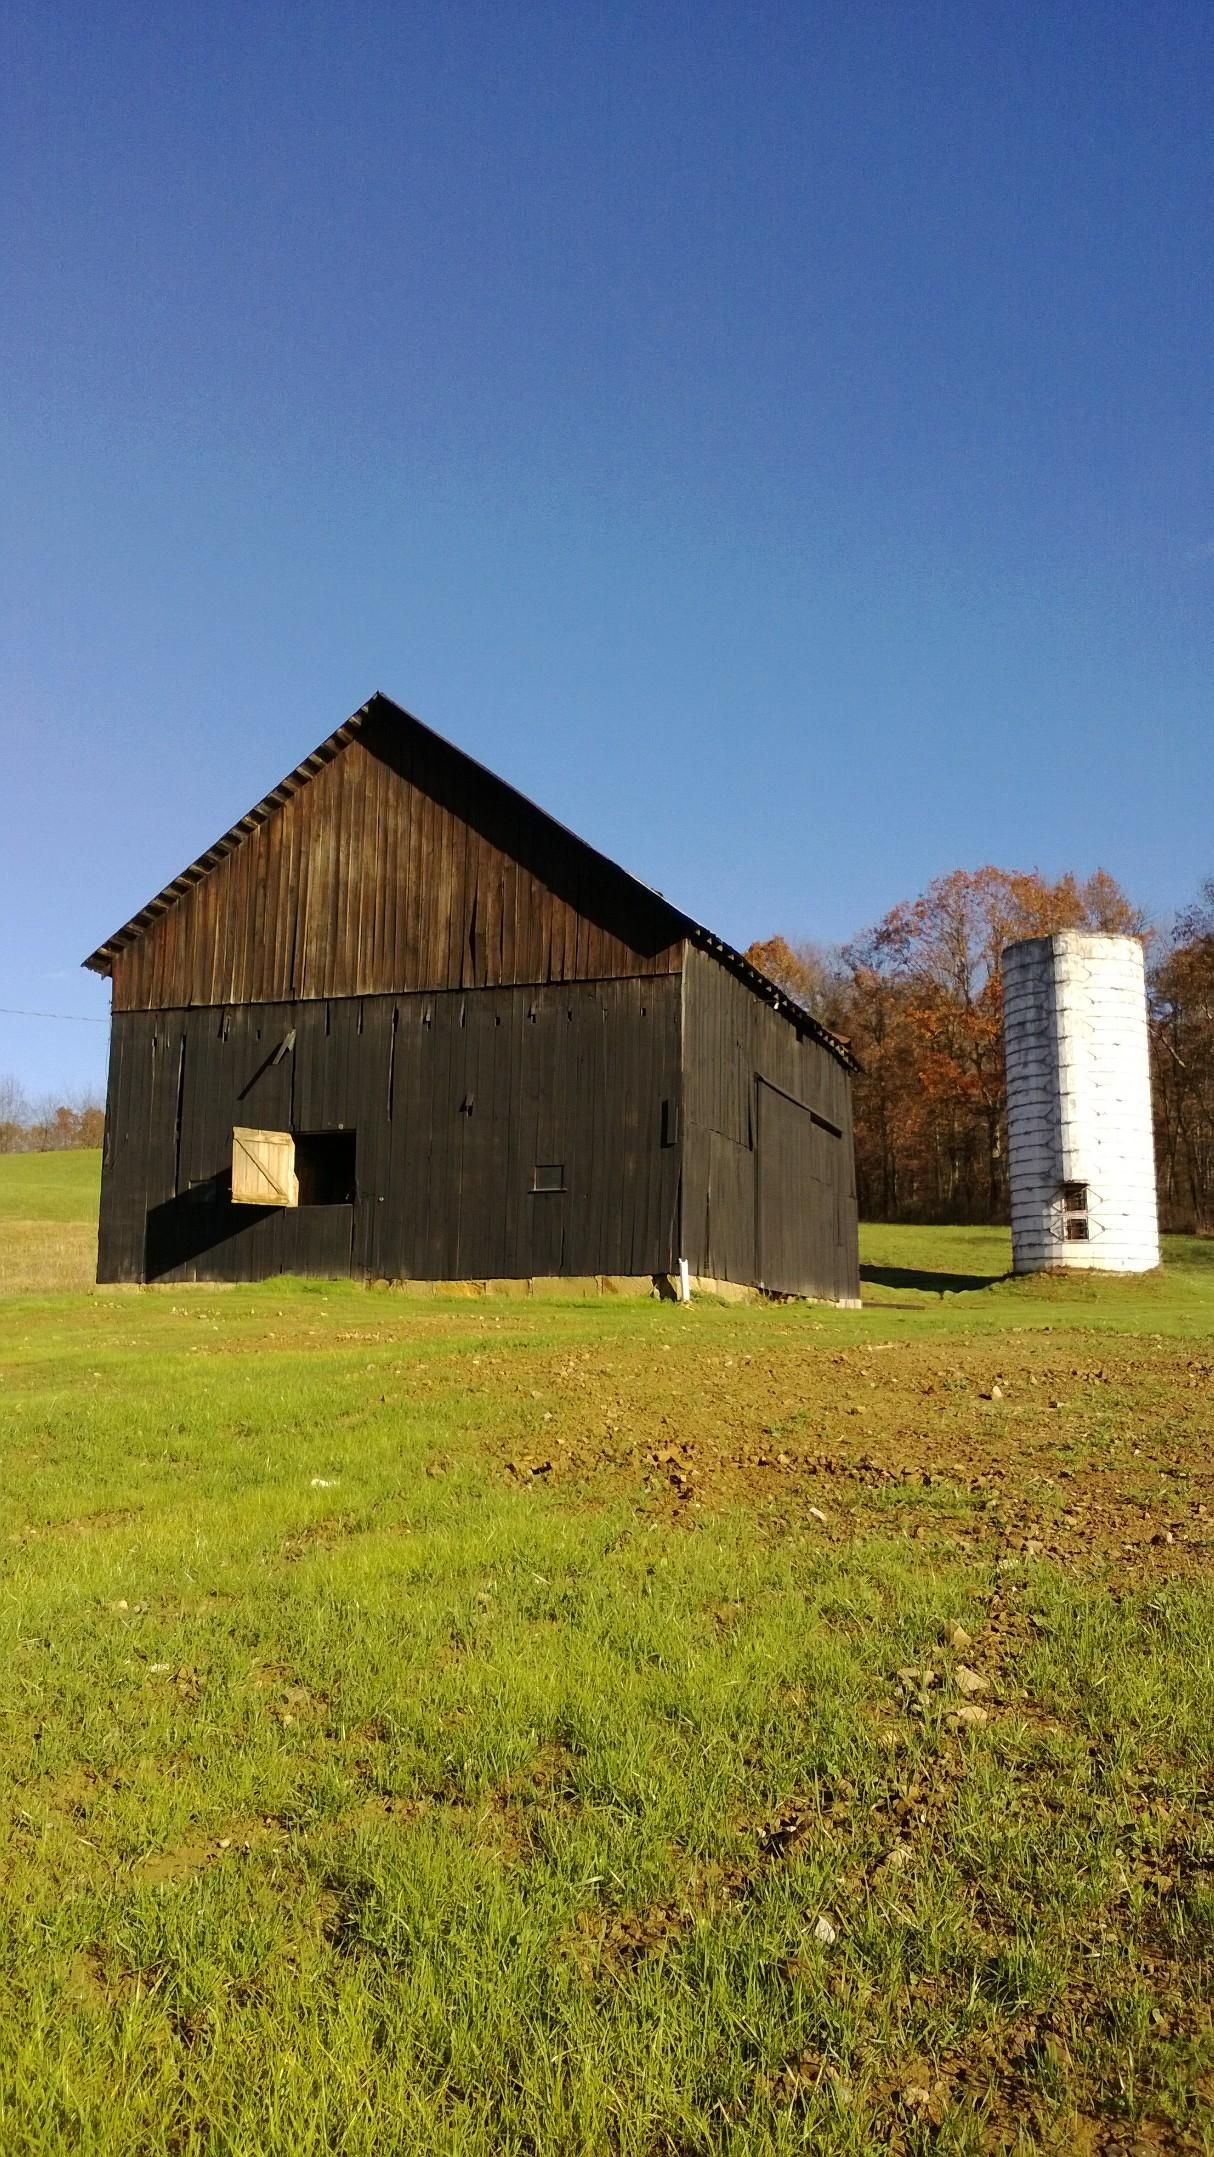 The Grass is coming in nicely.  It will not be long before this barn is employing a lot of people. www.TheMohicanGrandBarn.wordpress.com